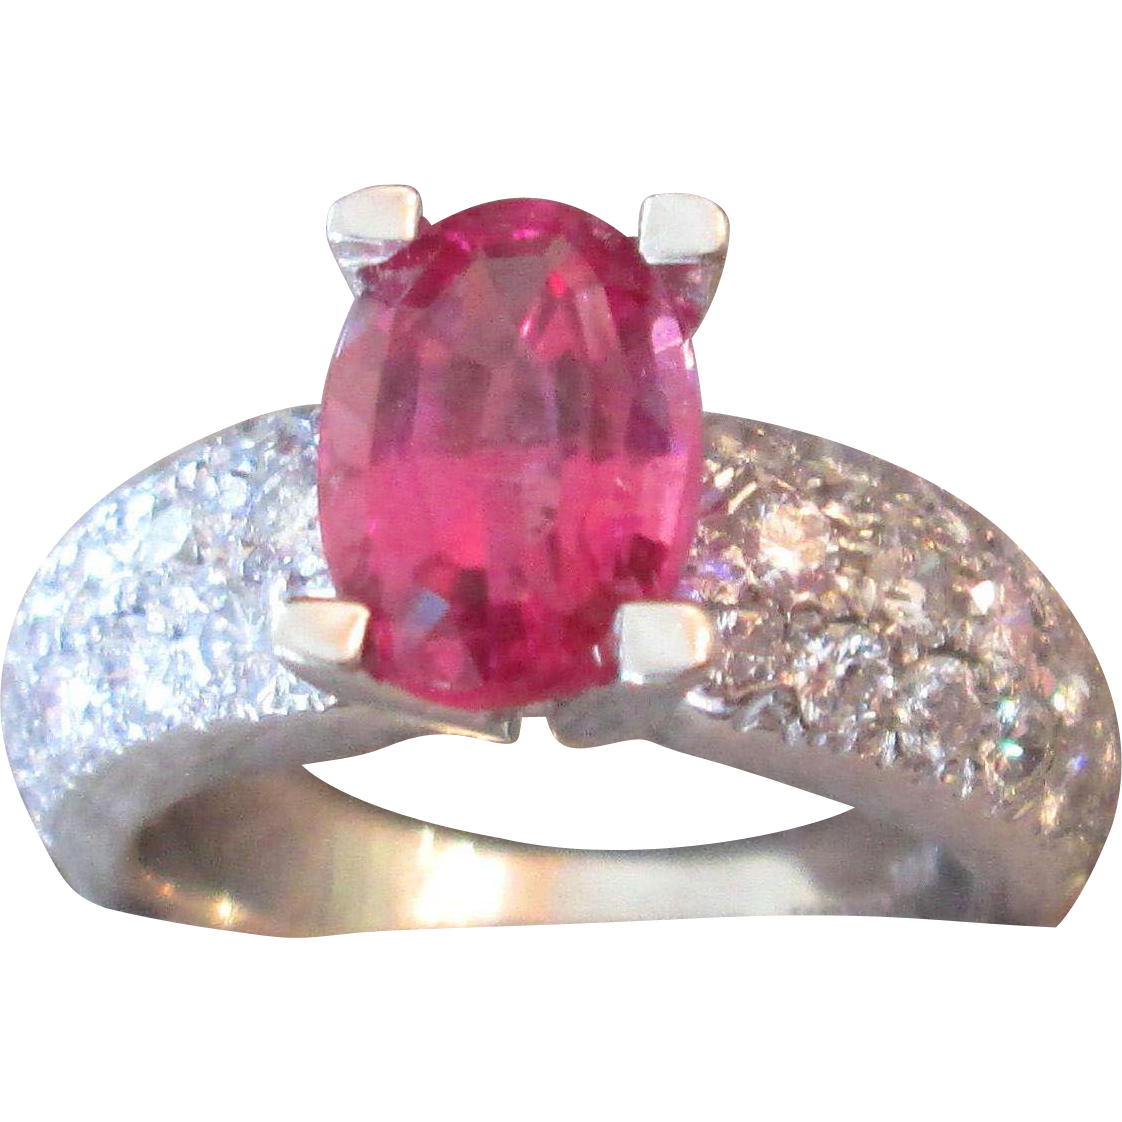 4 Carat TW Diamond And Rubellite Neon Pink Tourmaline 18K Pomellato Ring Italy Vintage Estate